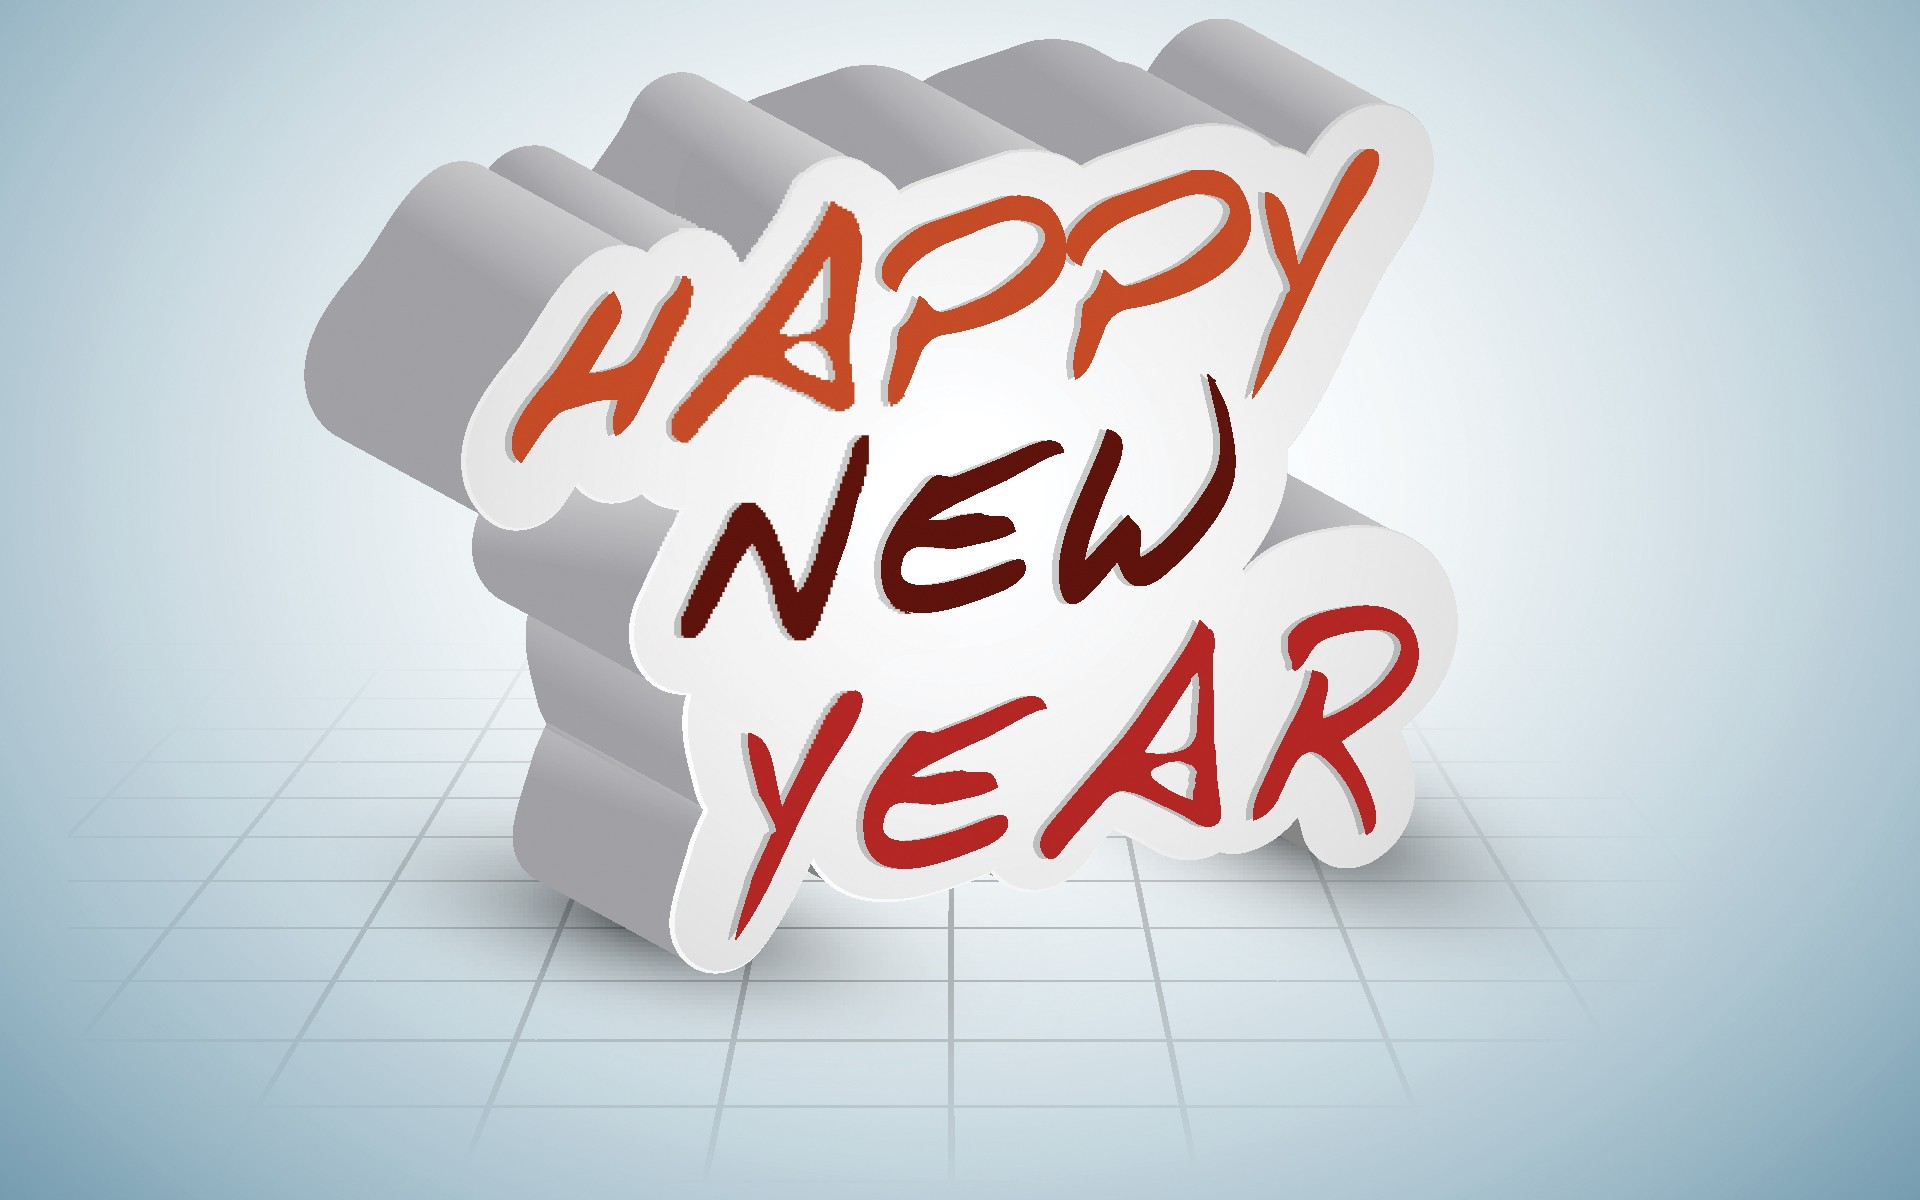 Happy New Year 3D Wallpaper Iphone